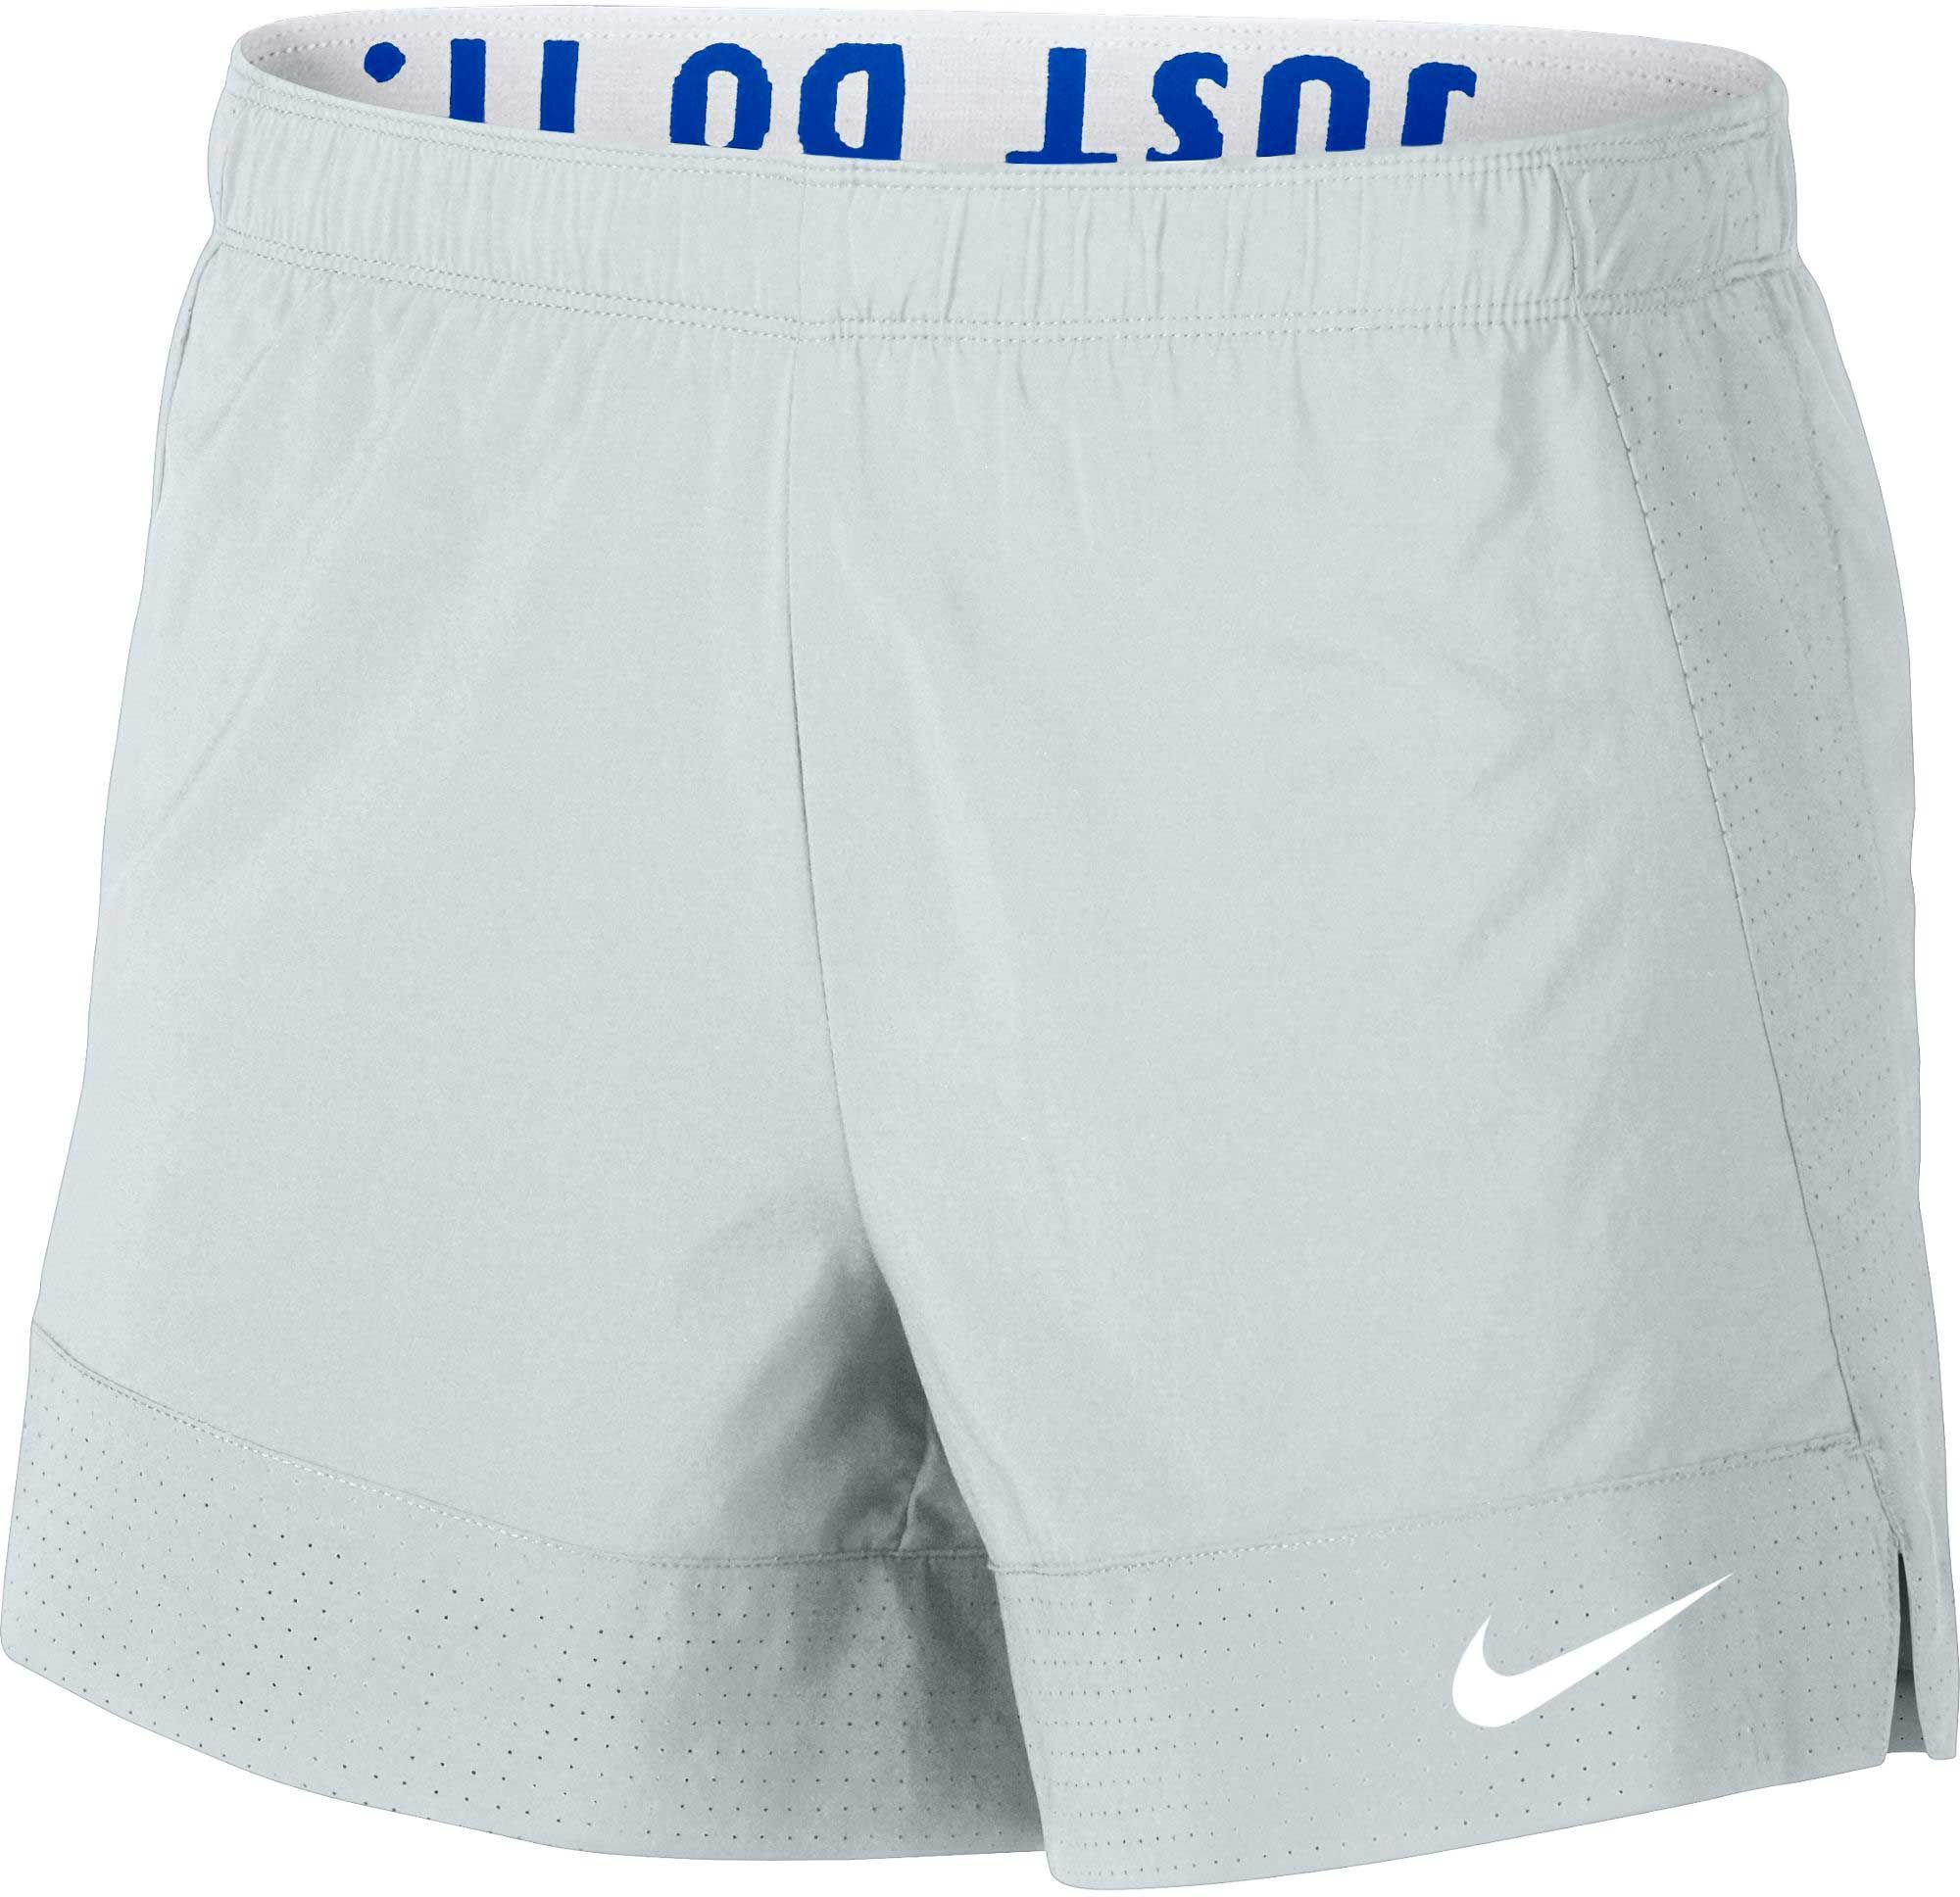 cc9c9aec60a4d Nike Women's Flex 2-in-1 Training Shorts, Size: XS, Black | Products ...